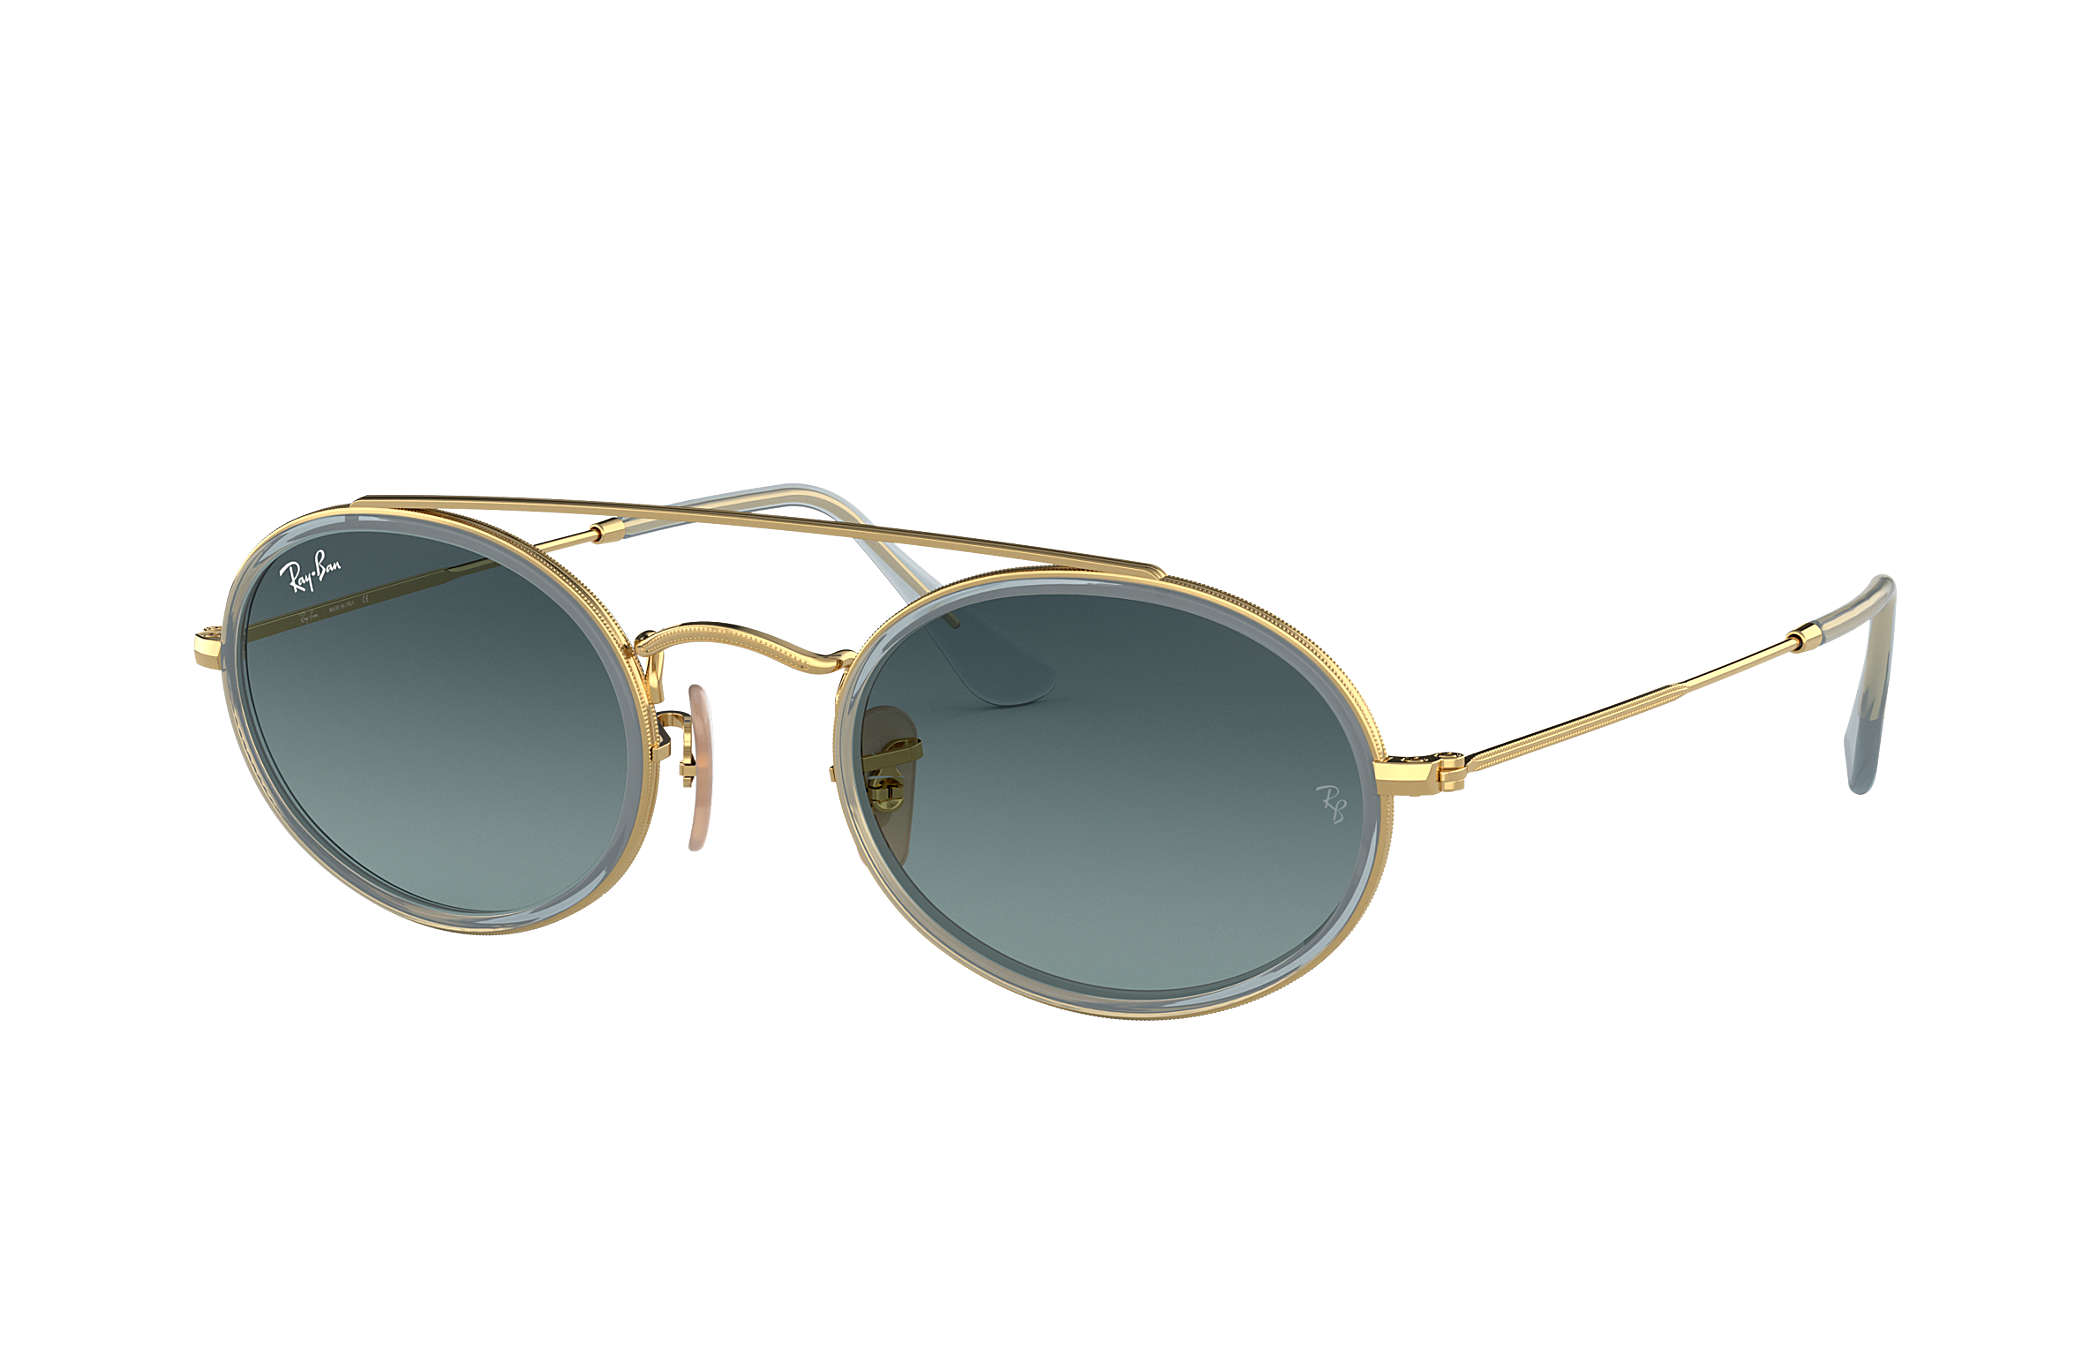 8ae82845ee Ray-Ban Oval Double Bridge RB3847N Gold - Metal - Blue Lenses ...